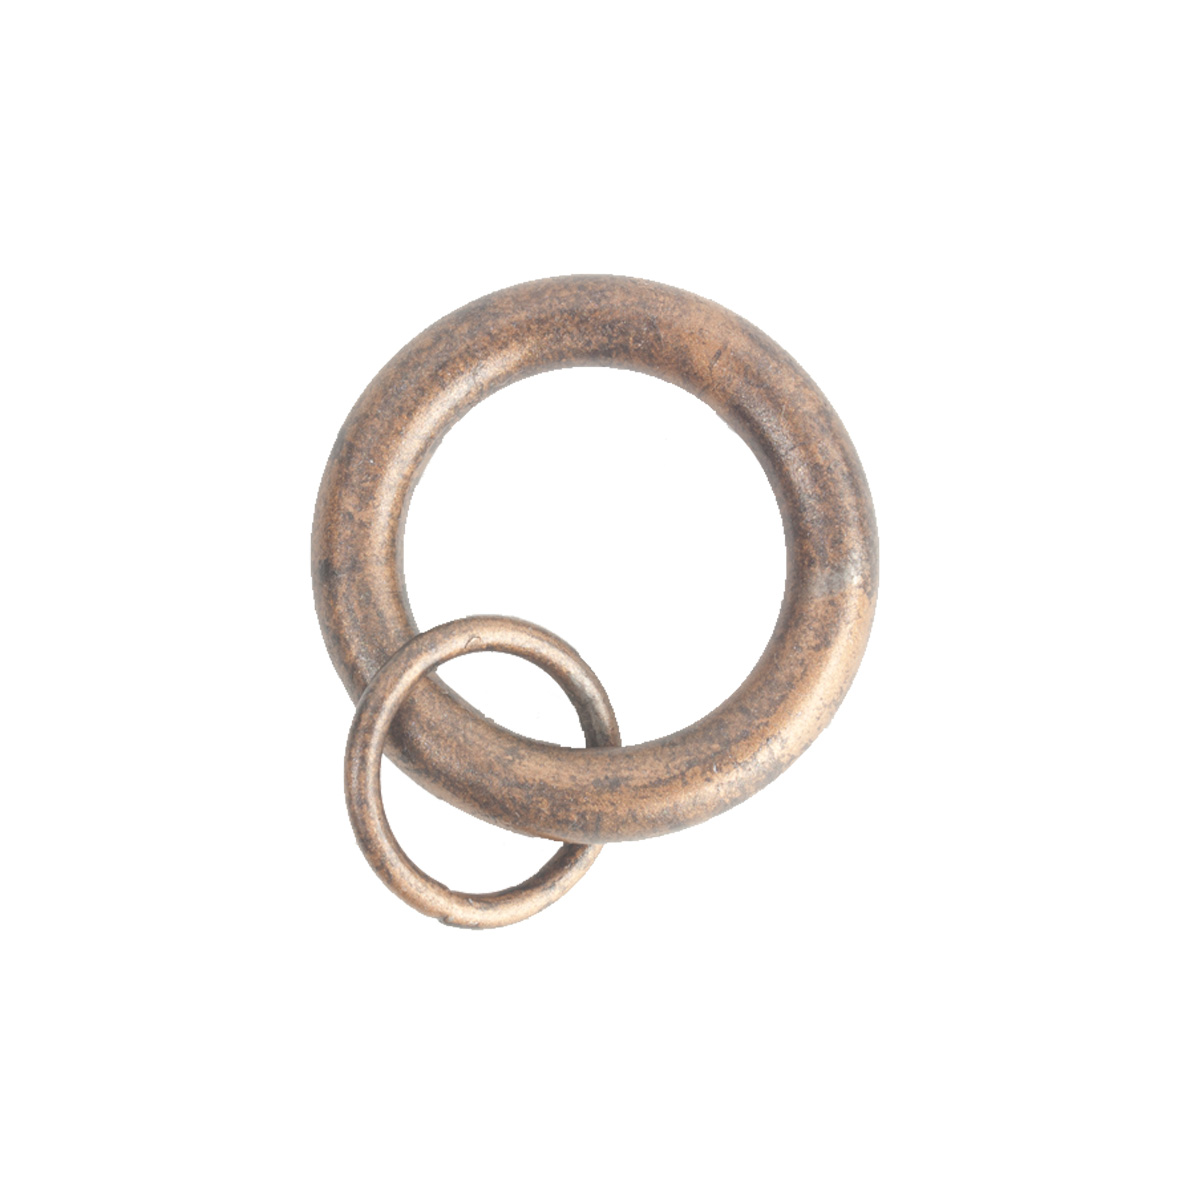 Rings W/ Loop 3 Bronze (10 Per Pack)